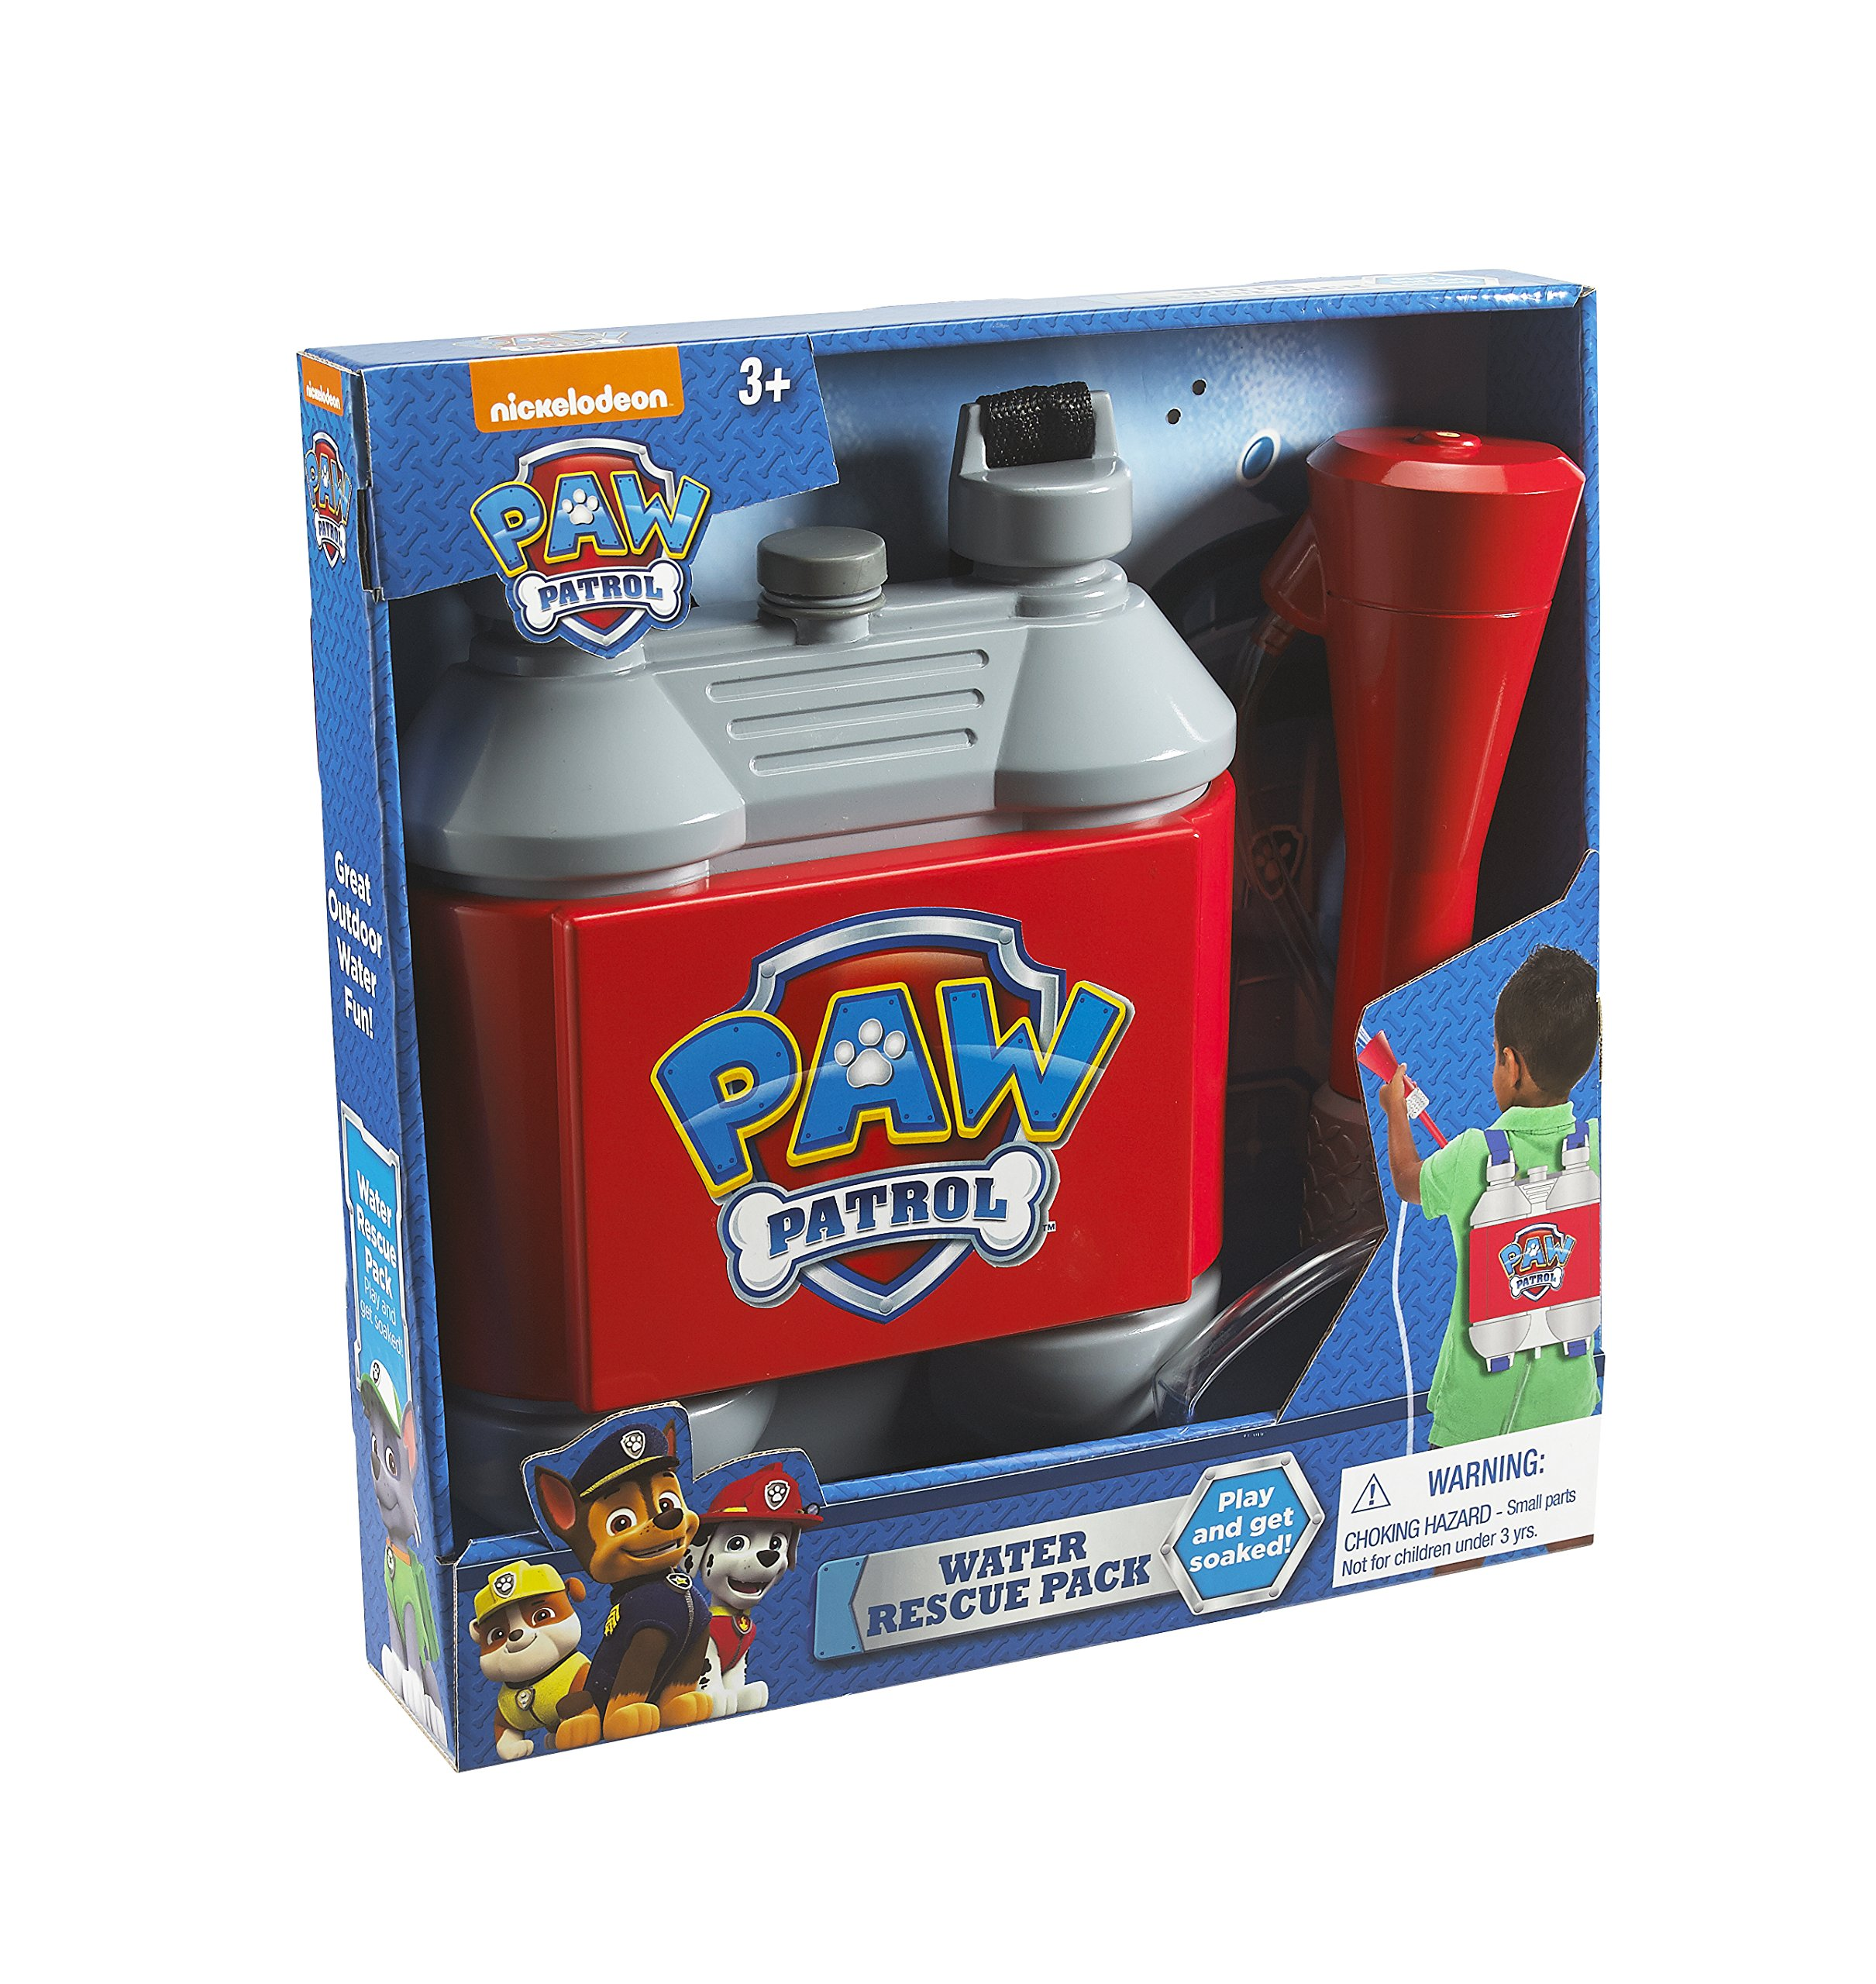 Little Kids 838 Paw Patrol Water Rescue Pack Toy by Nickelodeon